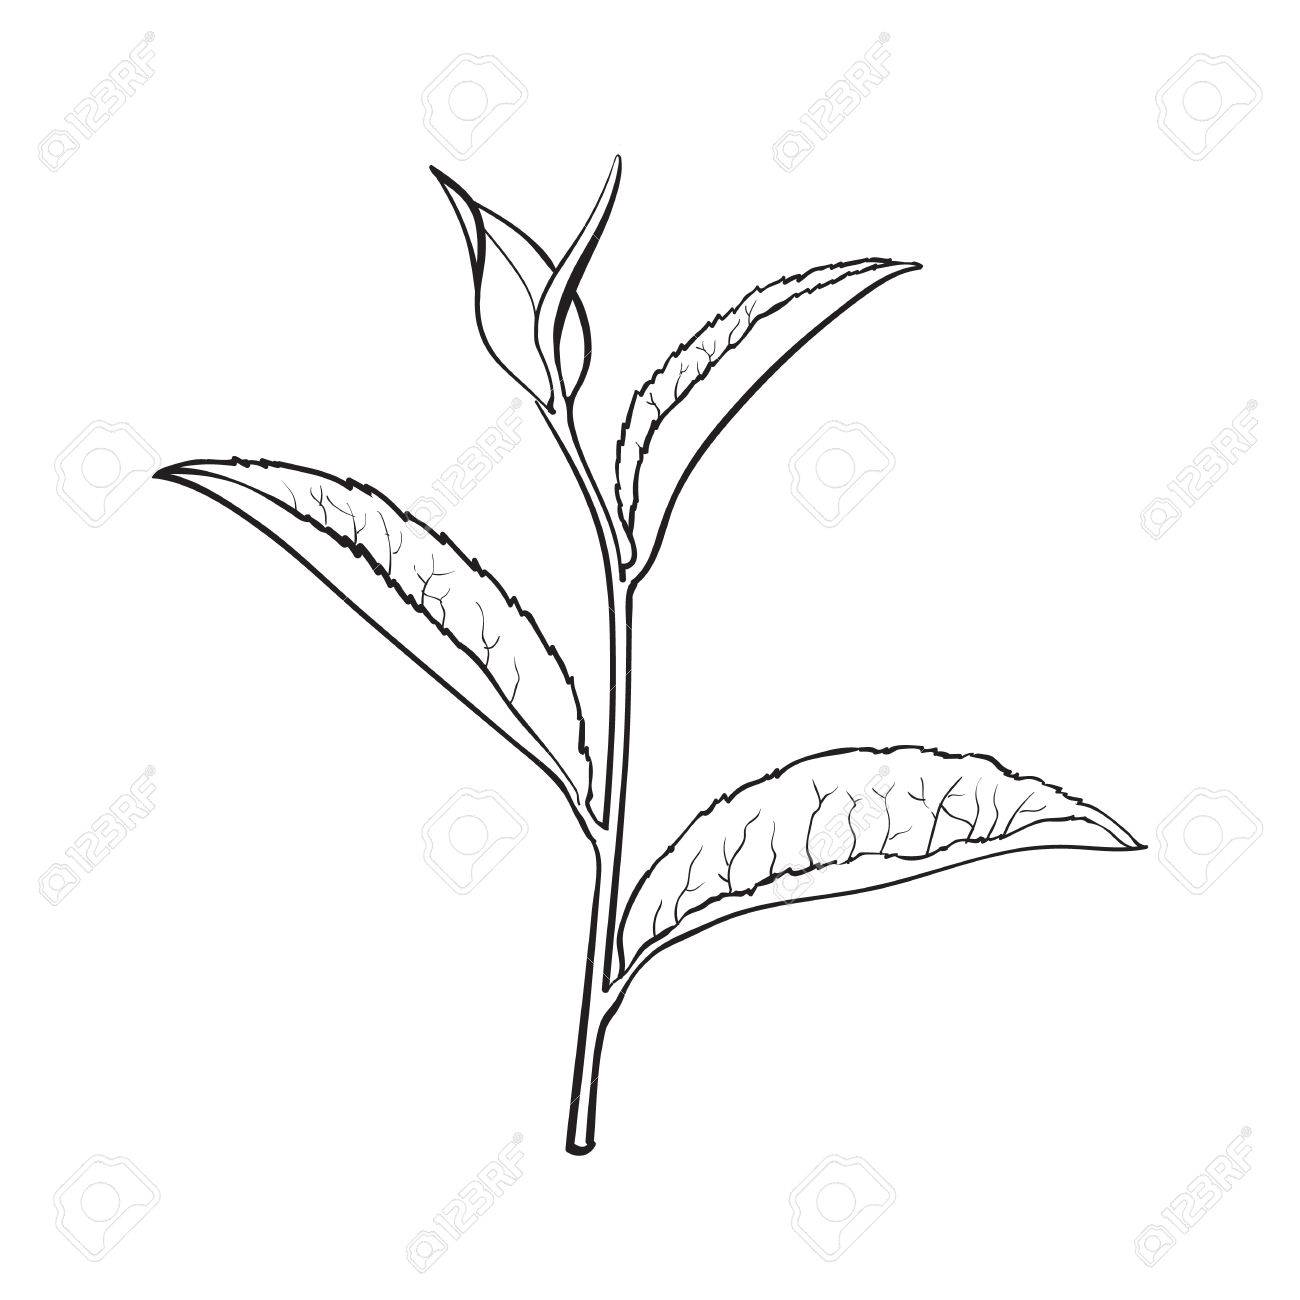 1300x1300 Hand Drawn Tea Leaf, Side View Sketch Style Vector Illustration